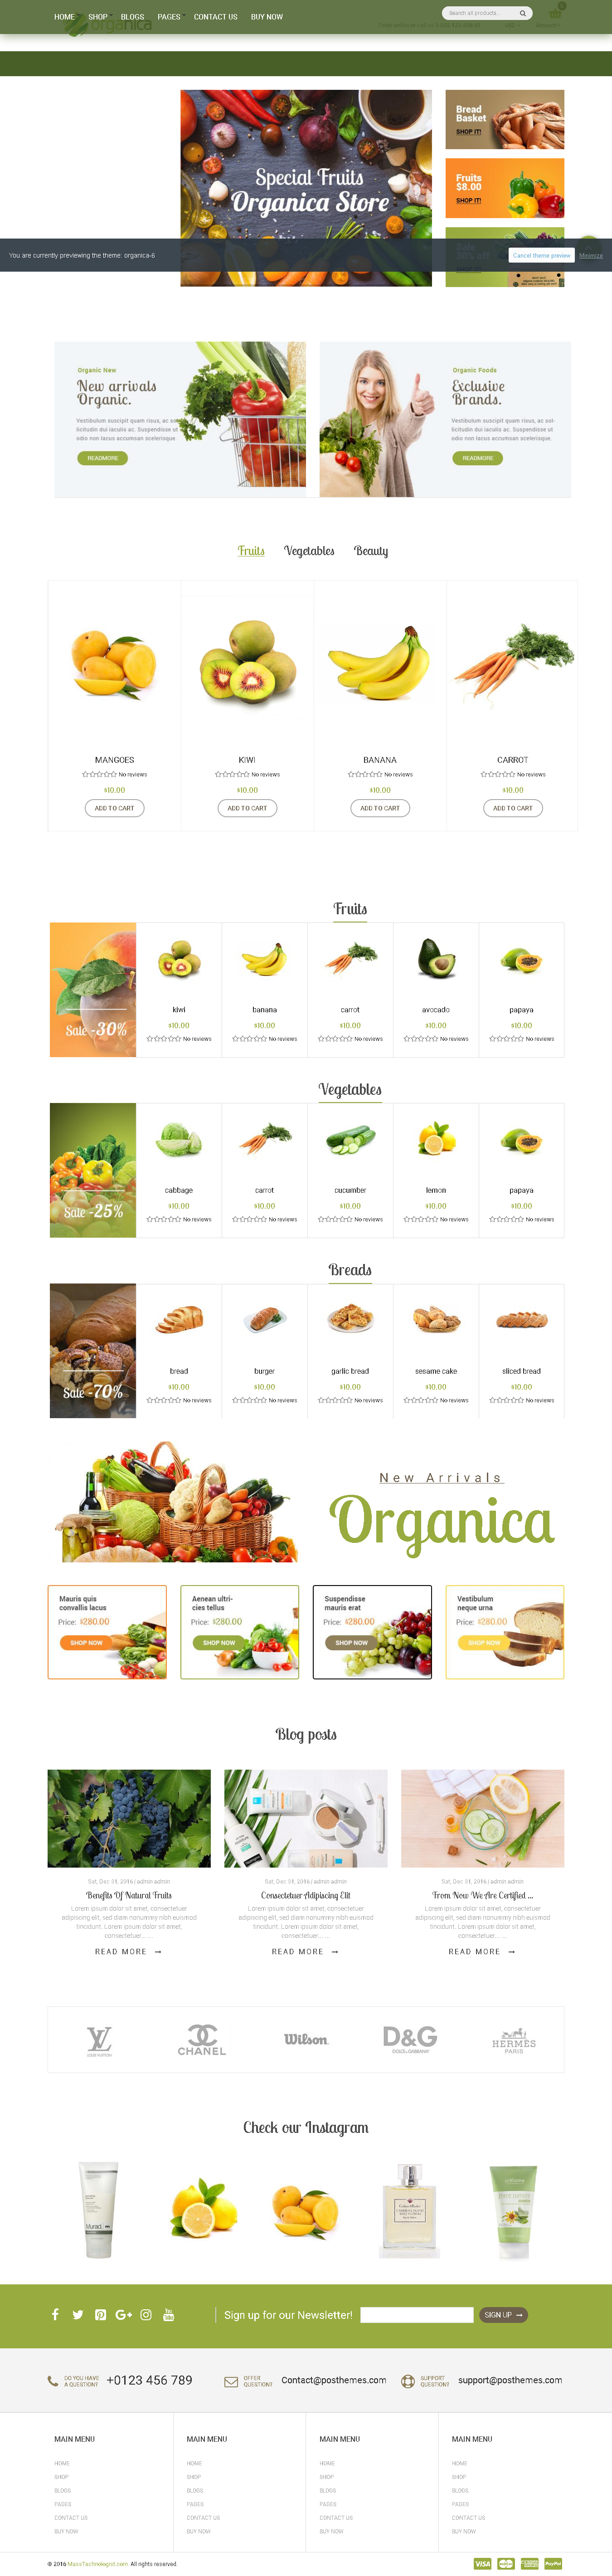 5 Best SHOPIFY Premium Themes Collection for Food Store 2017 - Organica - Organic, Beauty, Natural Cosmetics, Food, Farn and Eco drag and drop Shopify Theme